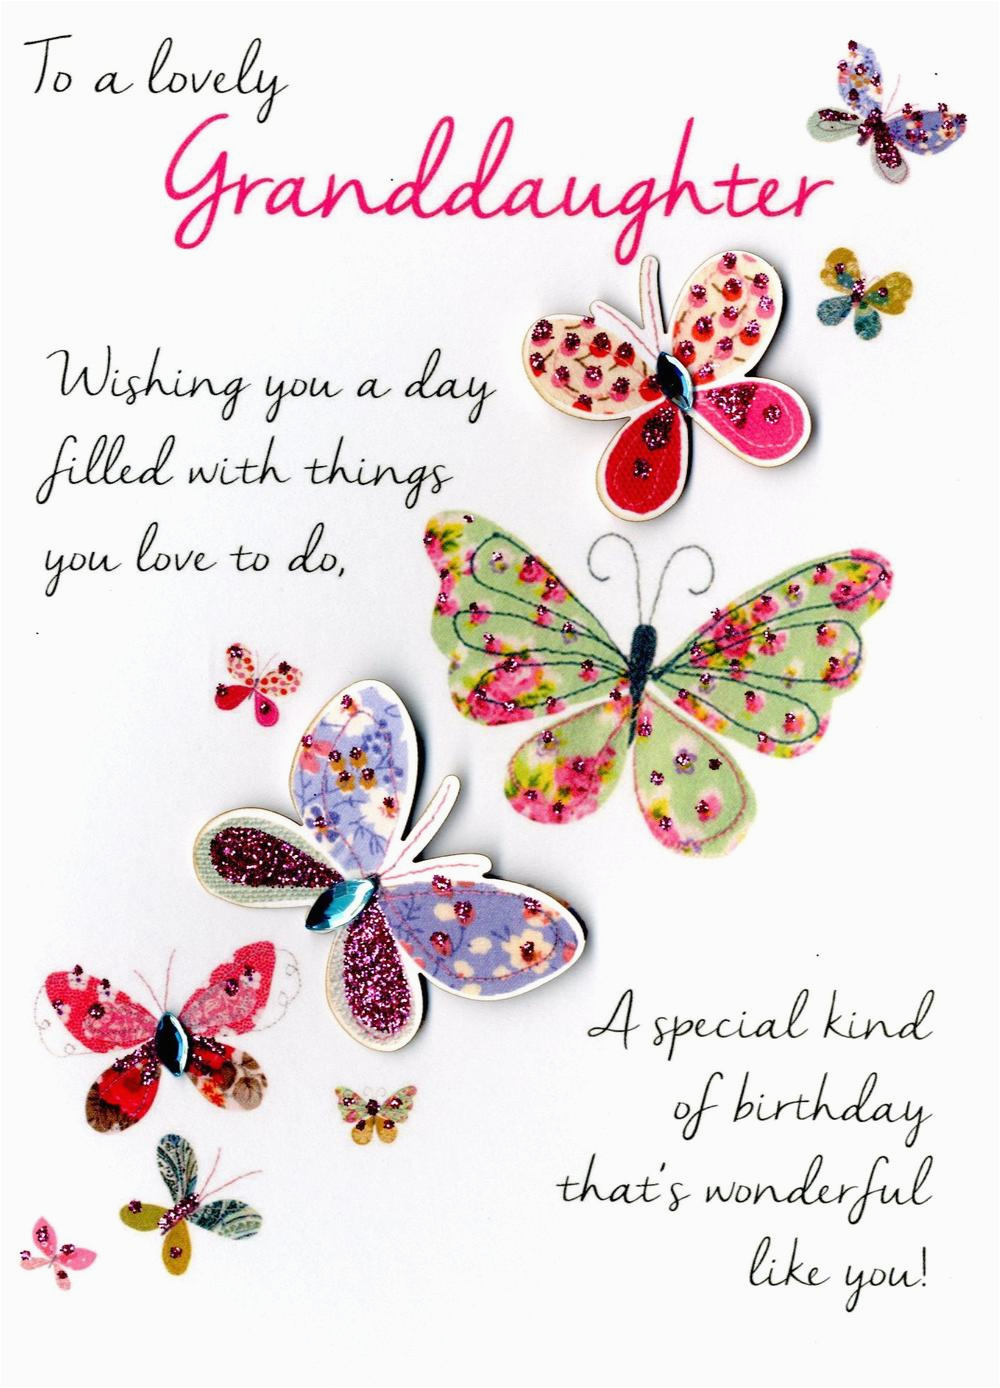 Kcsnjt053 Lovely Granddaughter Birthday Greeting Card Second Nature Just To Say Cards